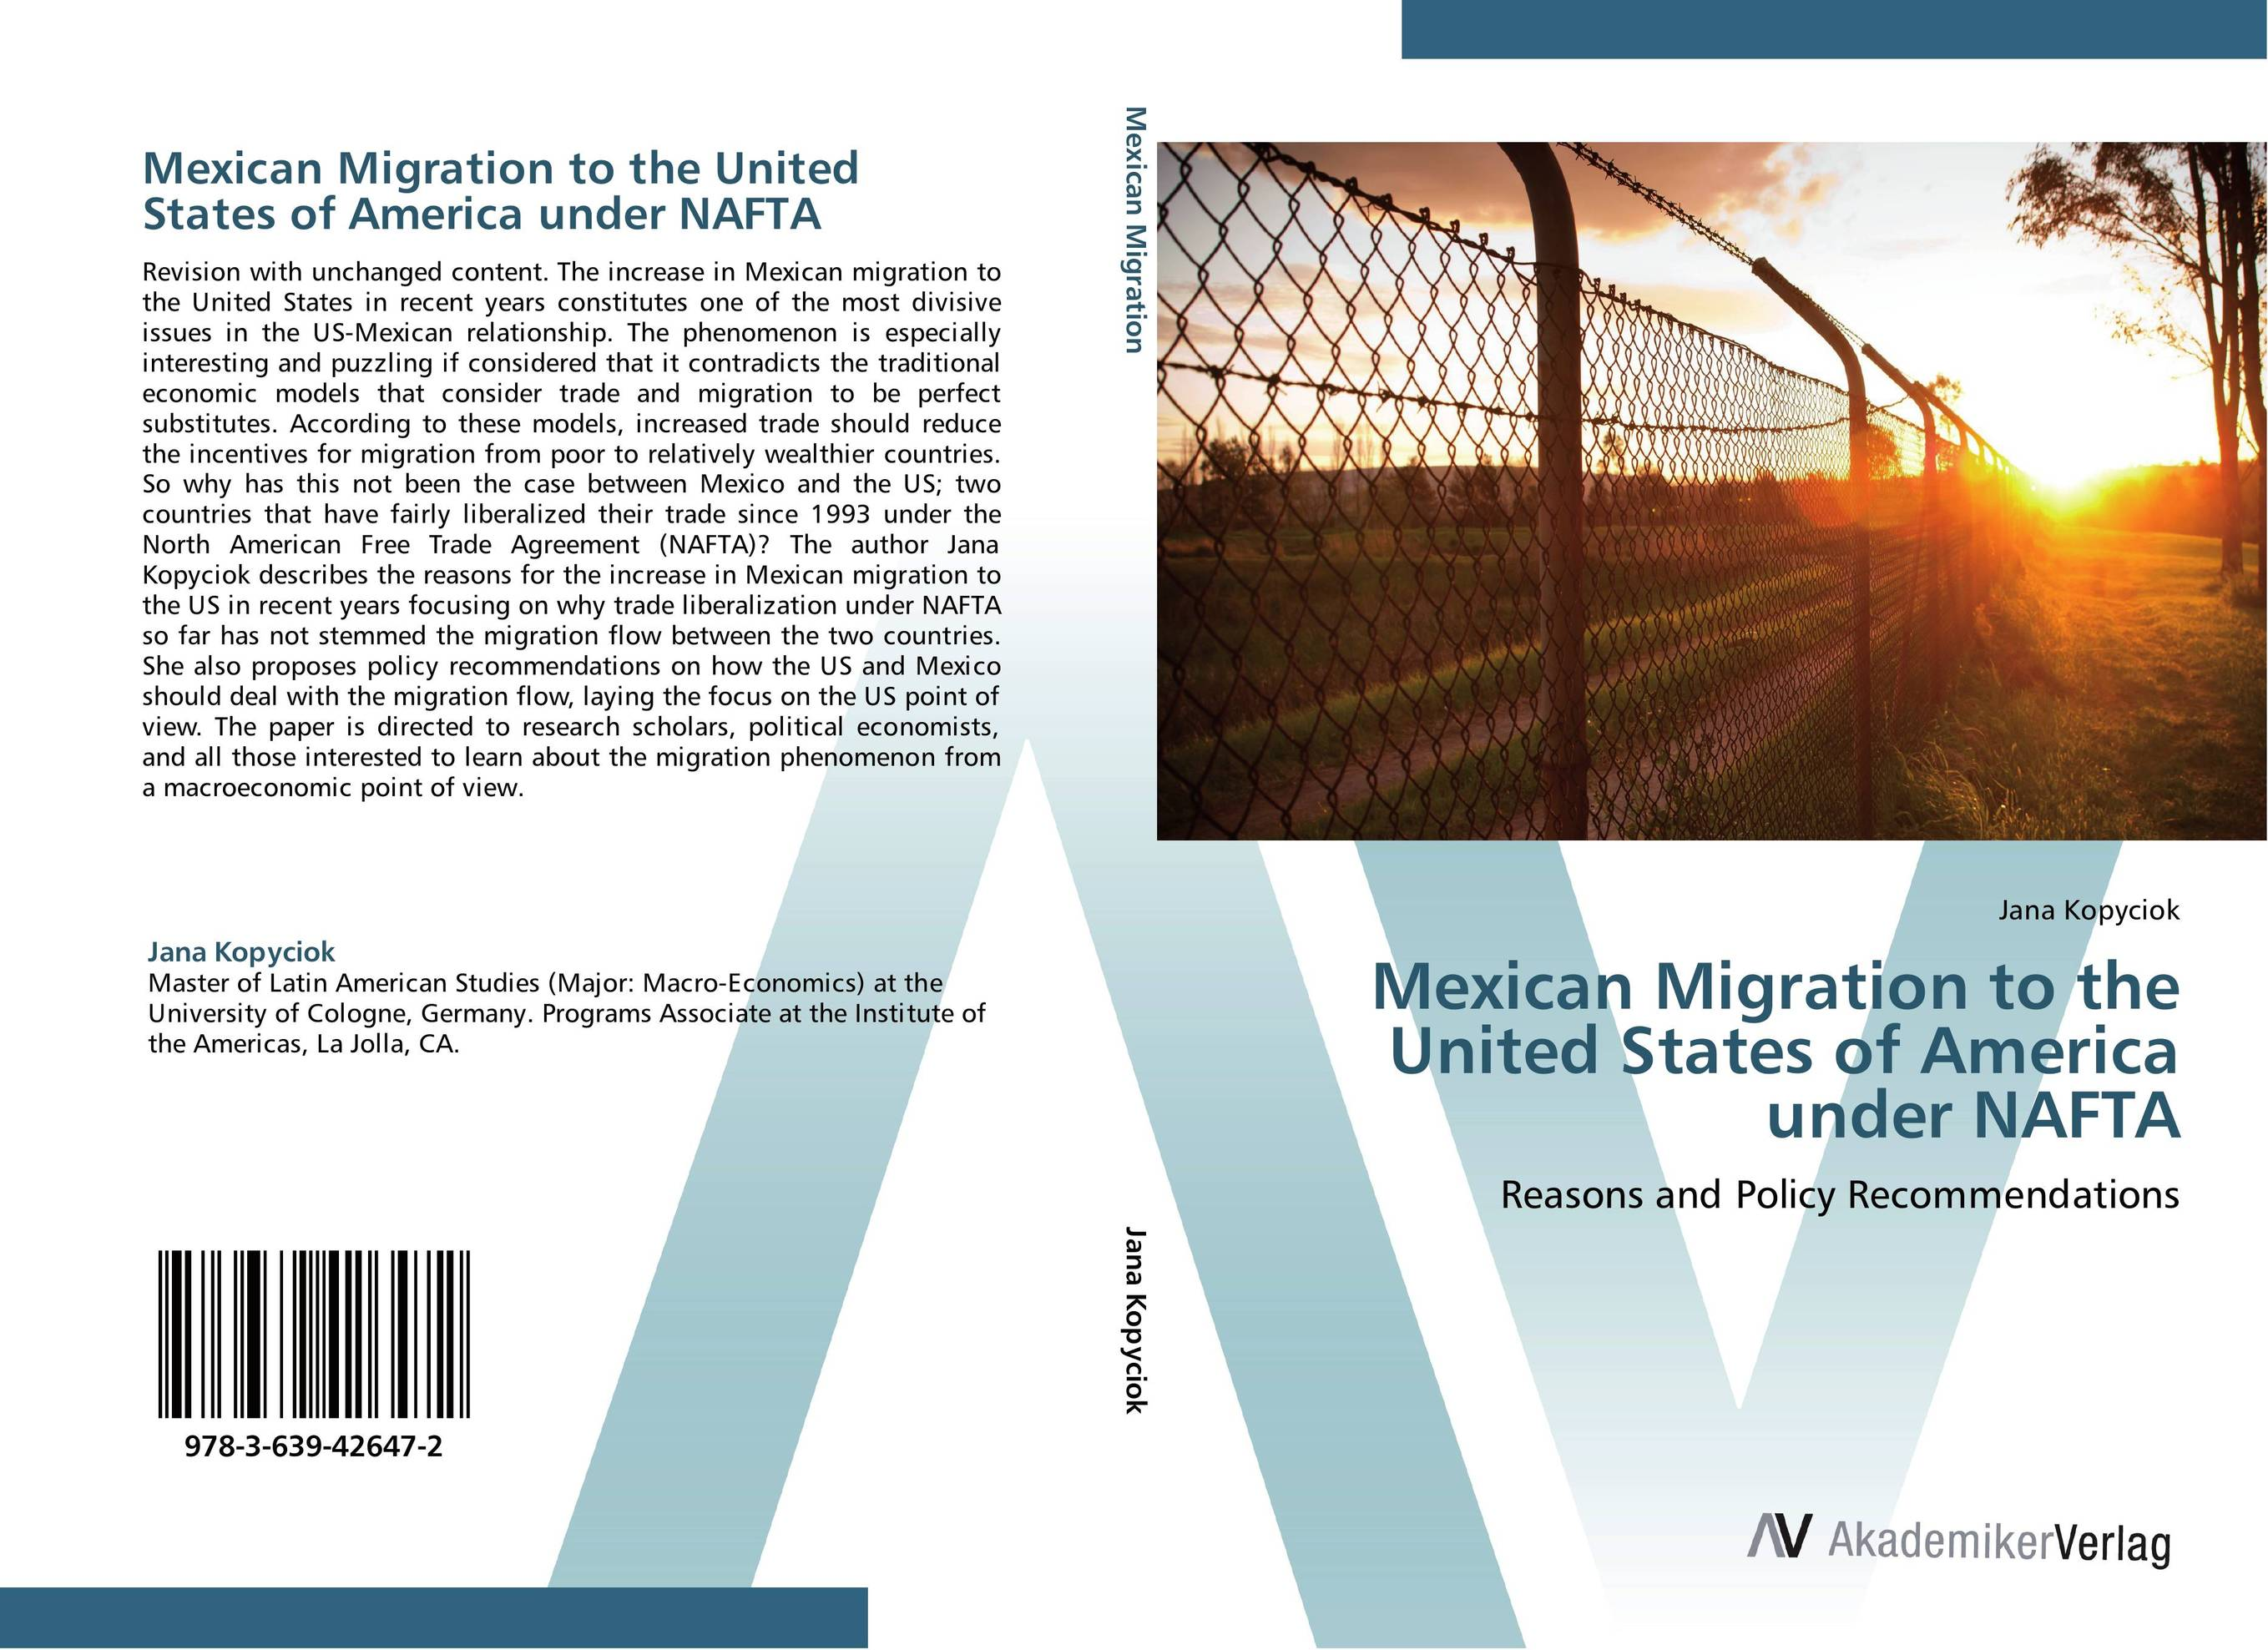 Mexican Migration to the United States of America under NAFTA